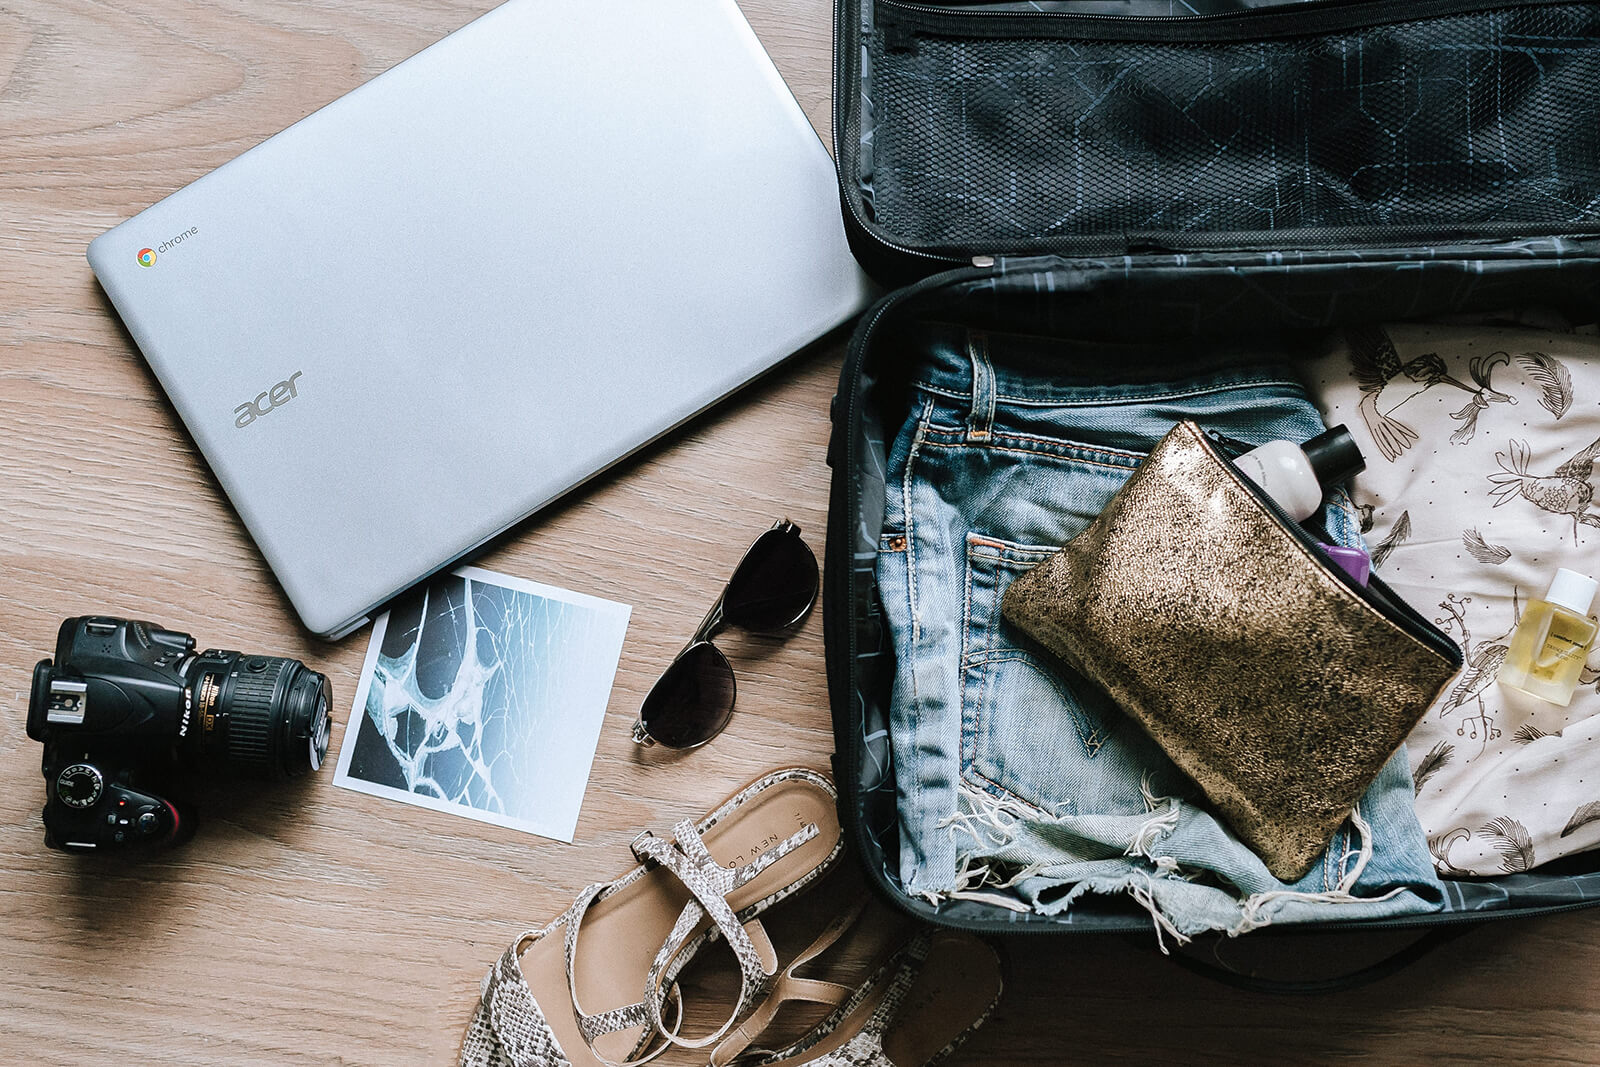 Packing the suitcase for a holiday trip